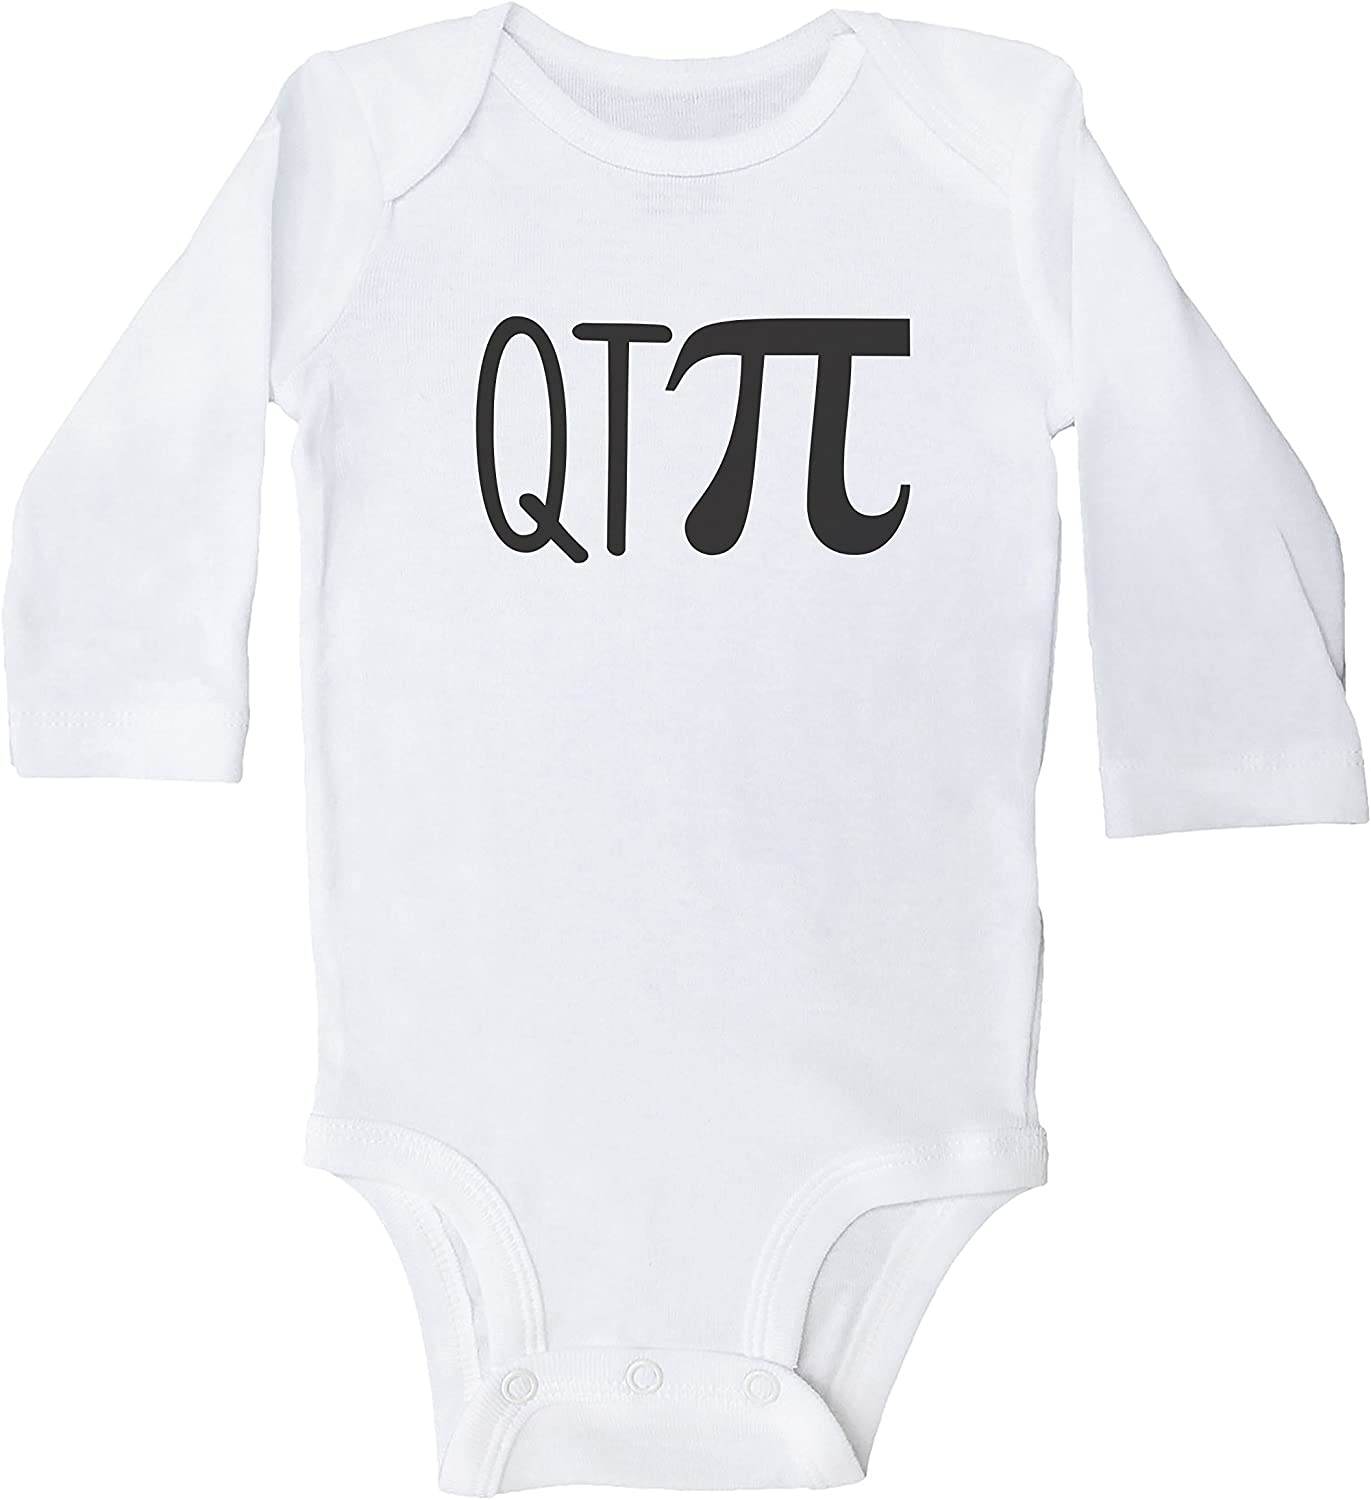 TOO CUTE ONESIE WHITE ON GRAY NEW FREE SHIPPING